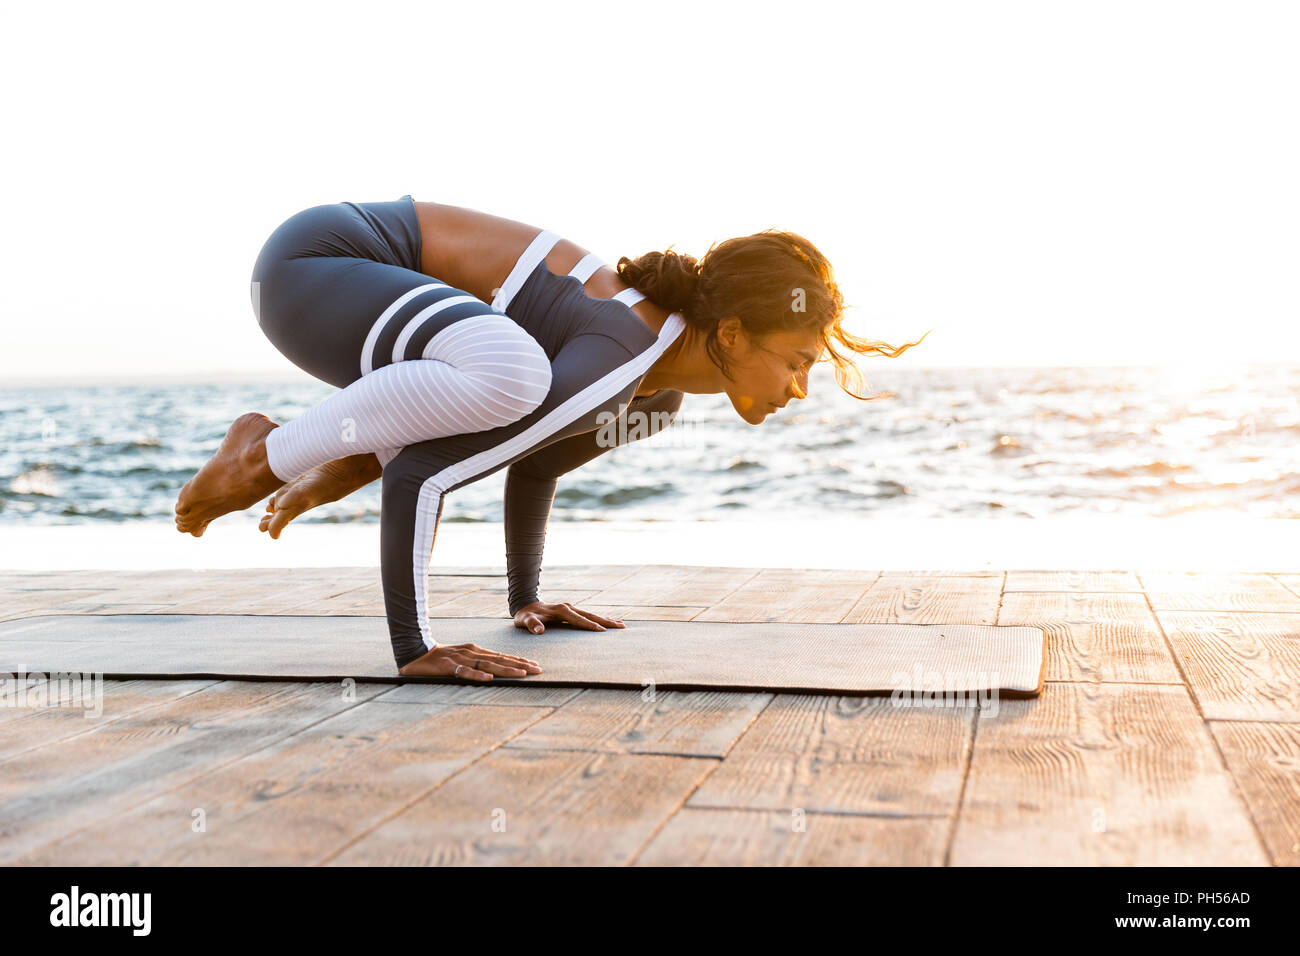 Picture of young fitness lady outdoors in the beach make yoga stretching exercises. - Stock Image